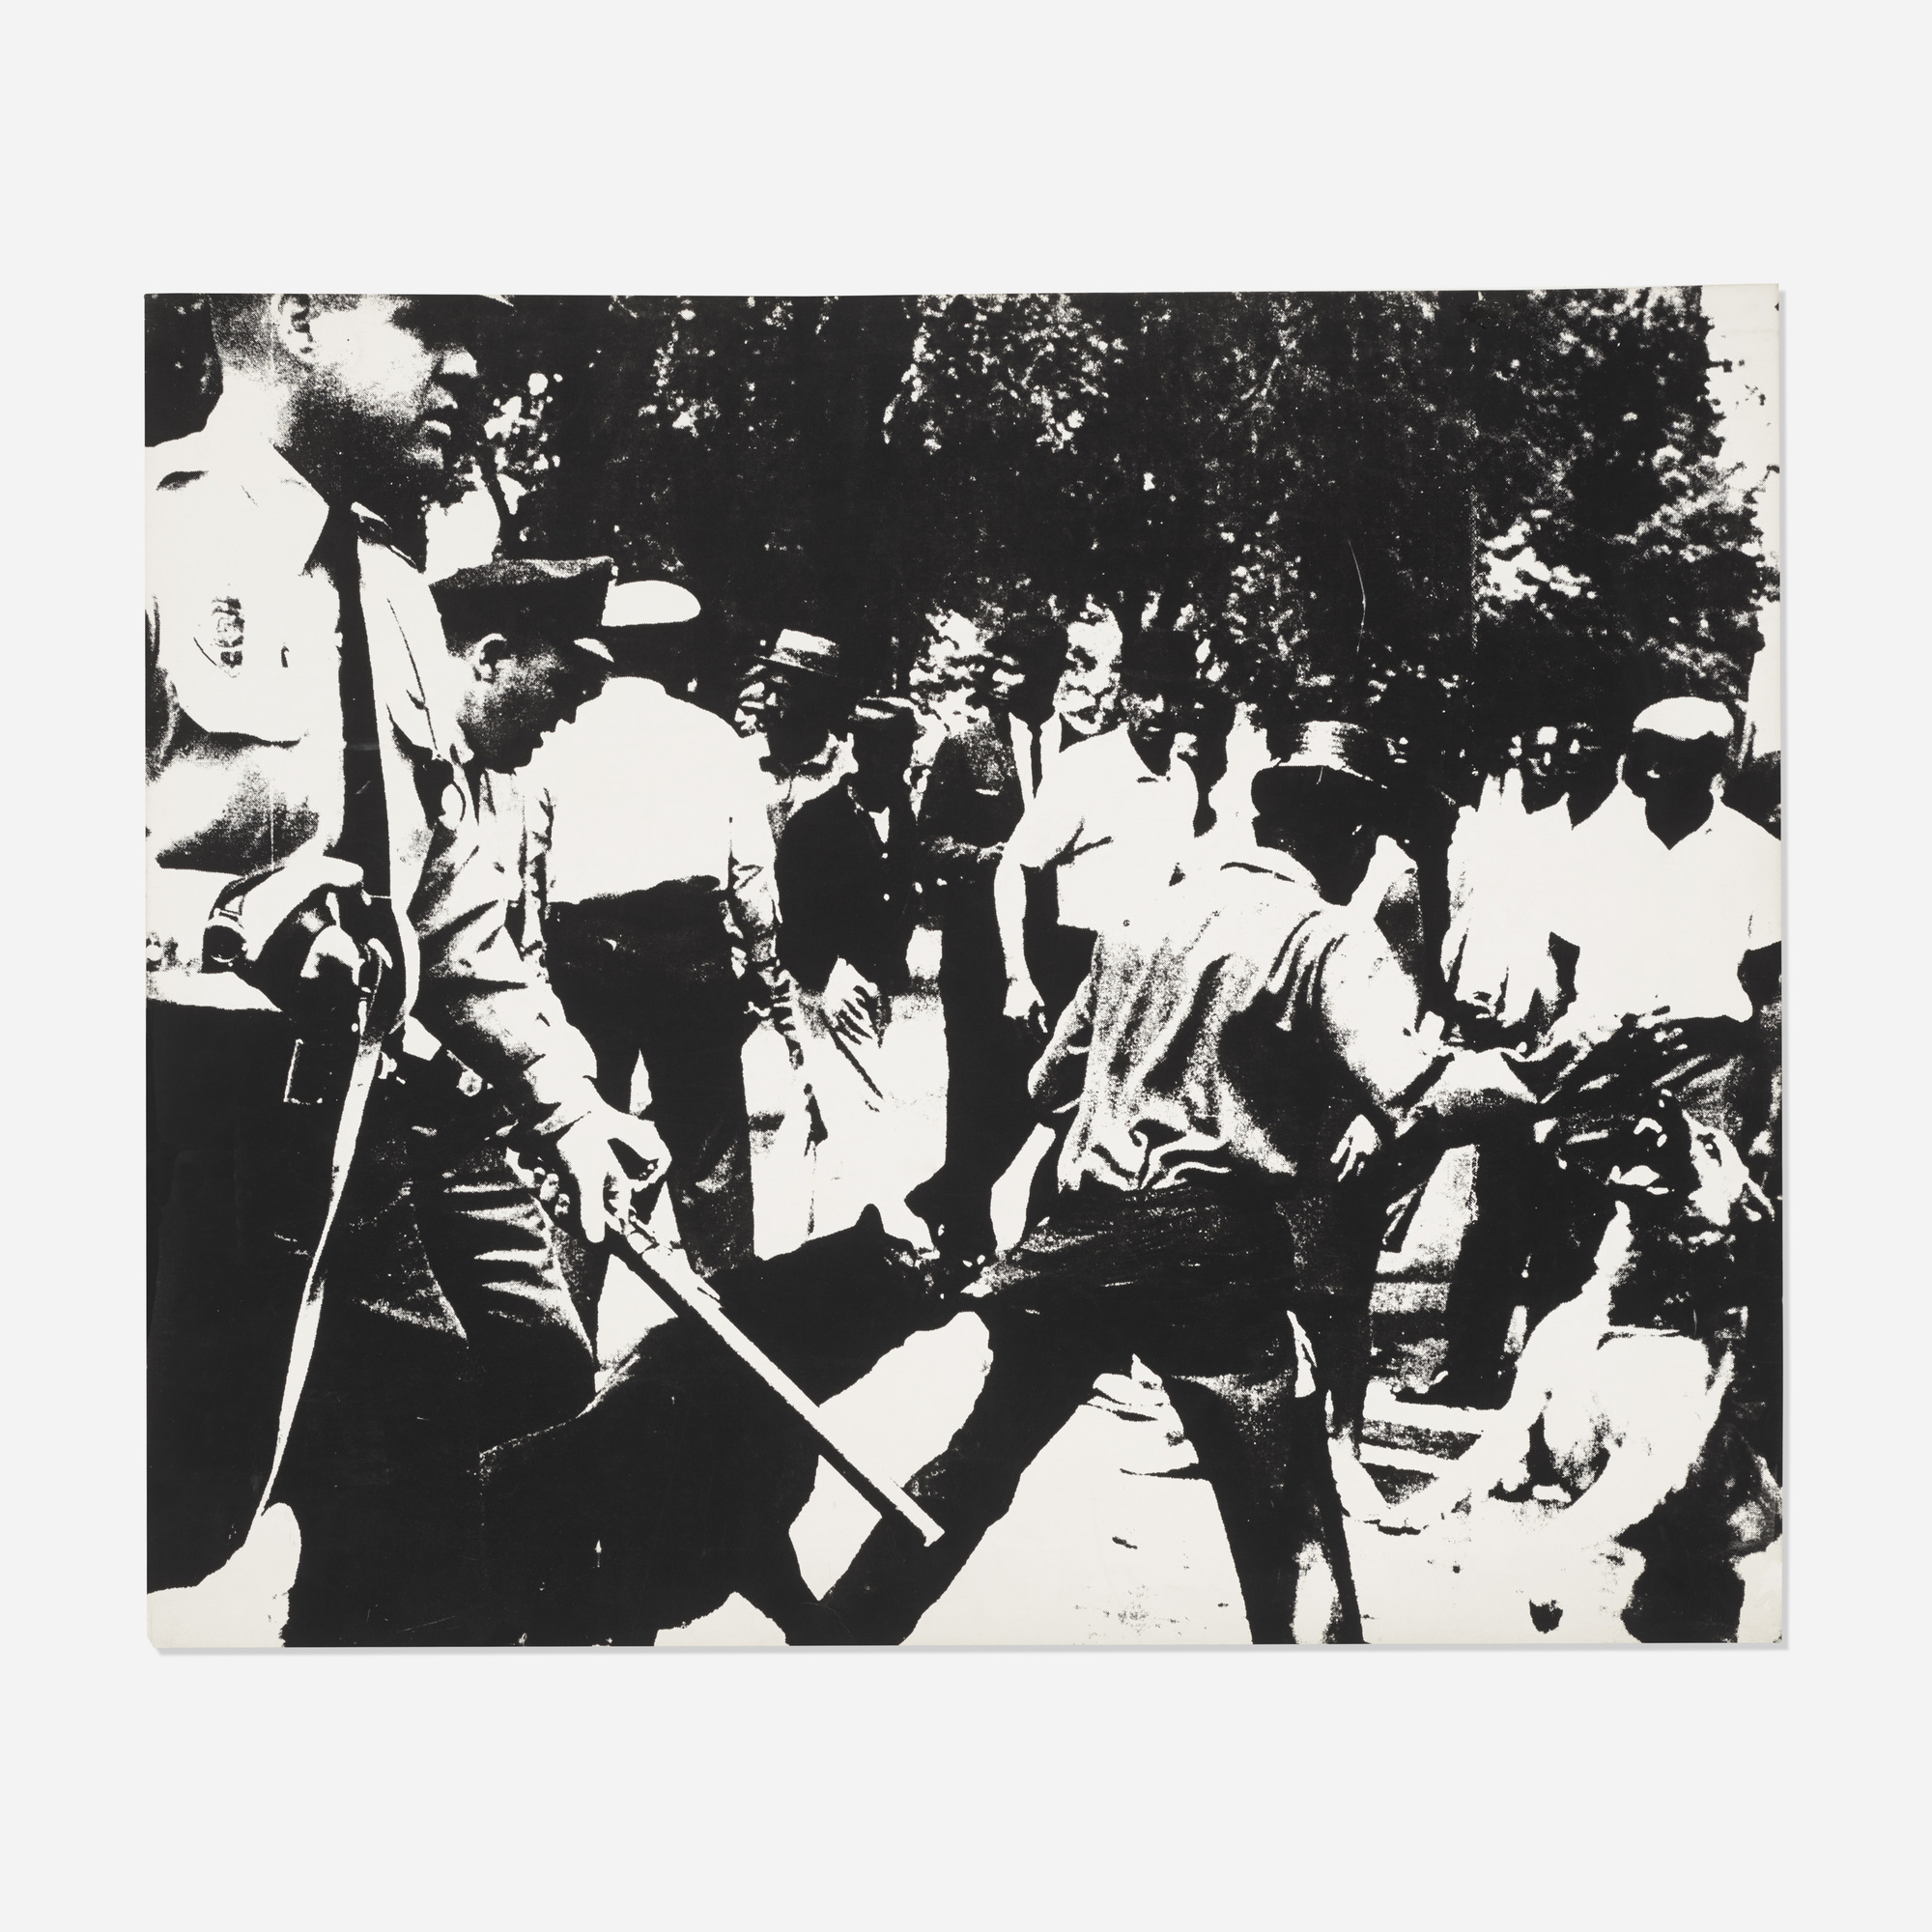 134: Andy Warhol / Birmingham Race Riot (from the Ten Works X Ten Painters portfolio) (1 of 2)